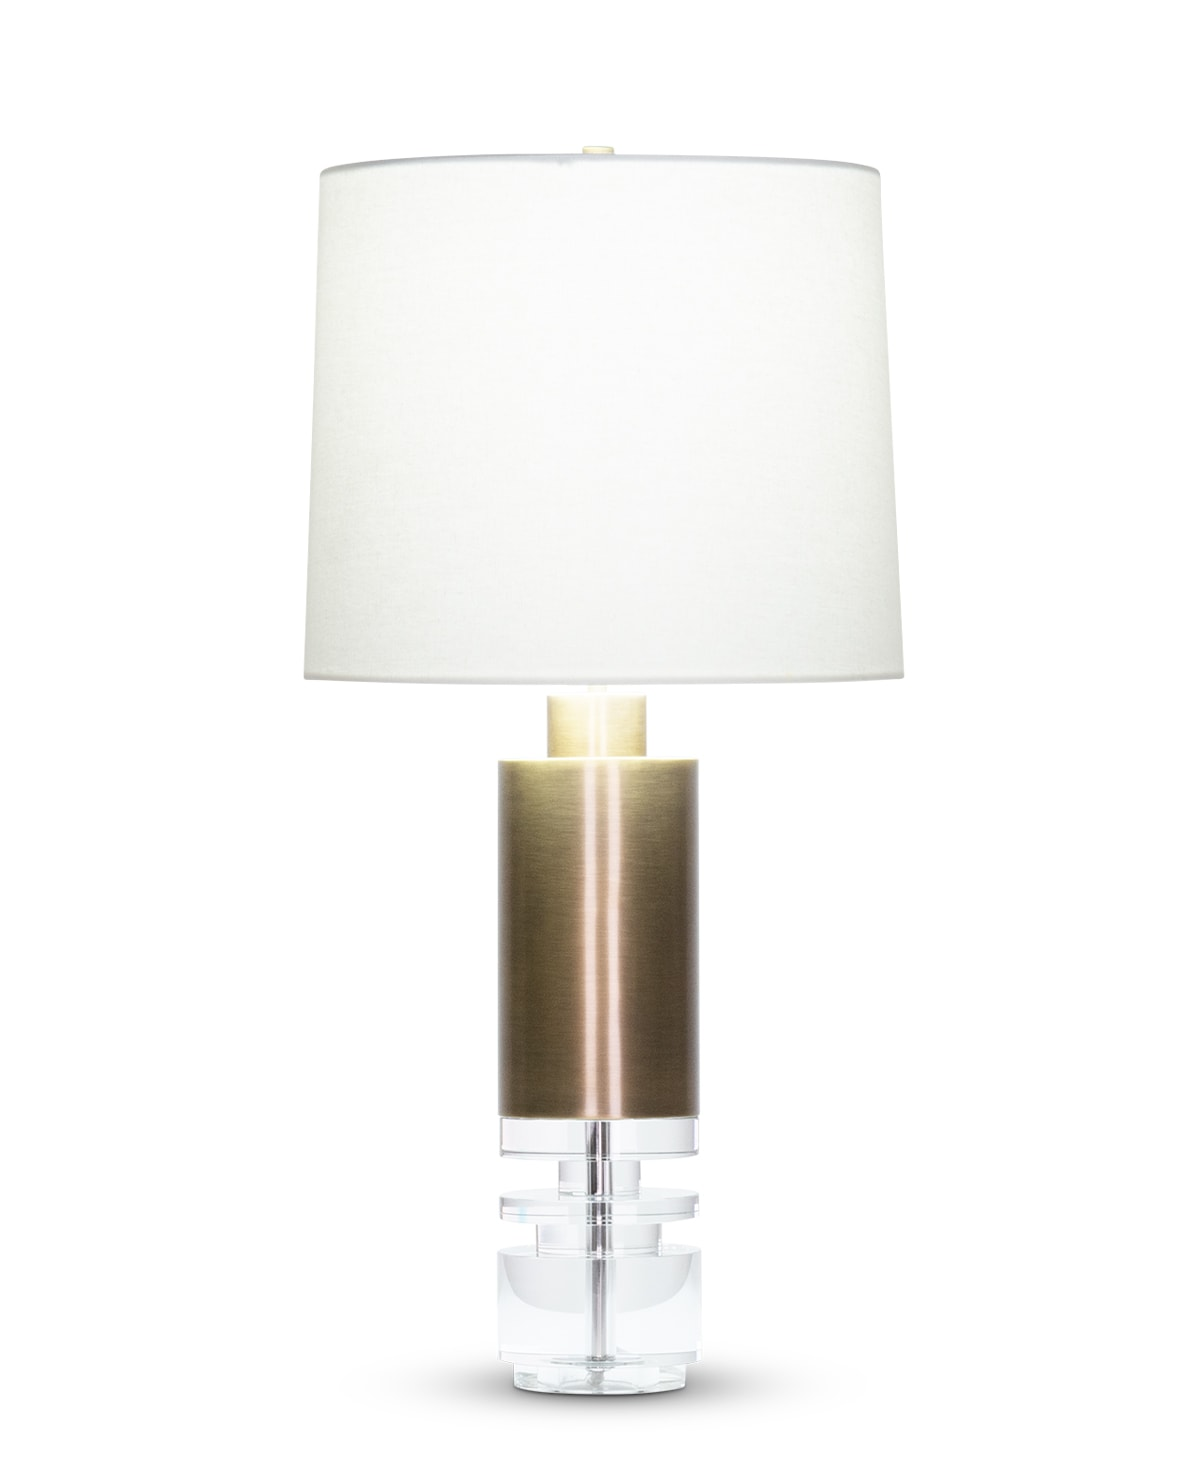 FlowDecor Scott Table Lamp in crystal and metal with antique brass finish and off-white cotton tapered drum shade (# 4527)